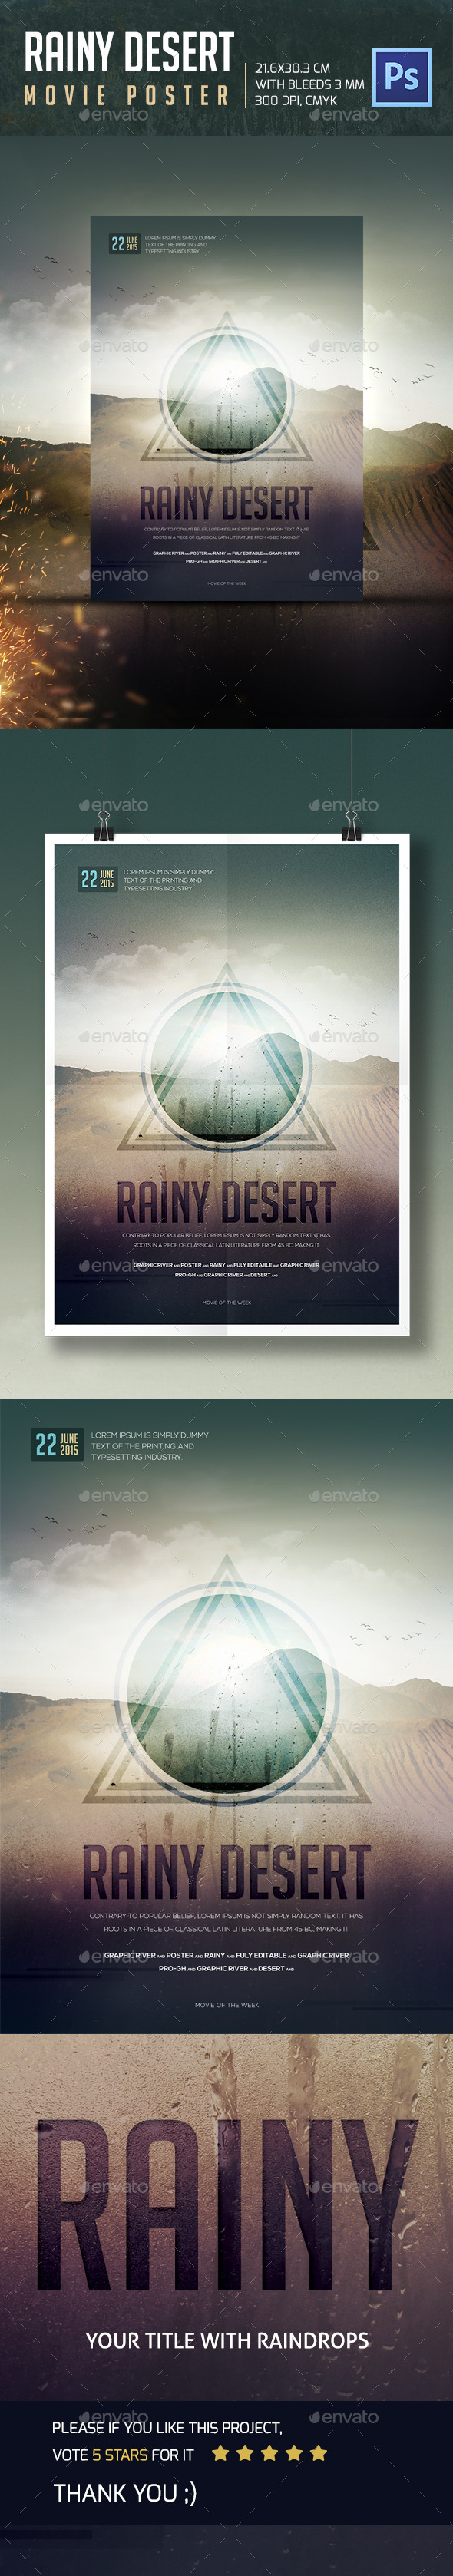 GraphicRiver Rainy Desert Movie Poster 11847381